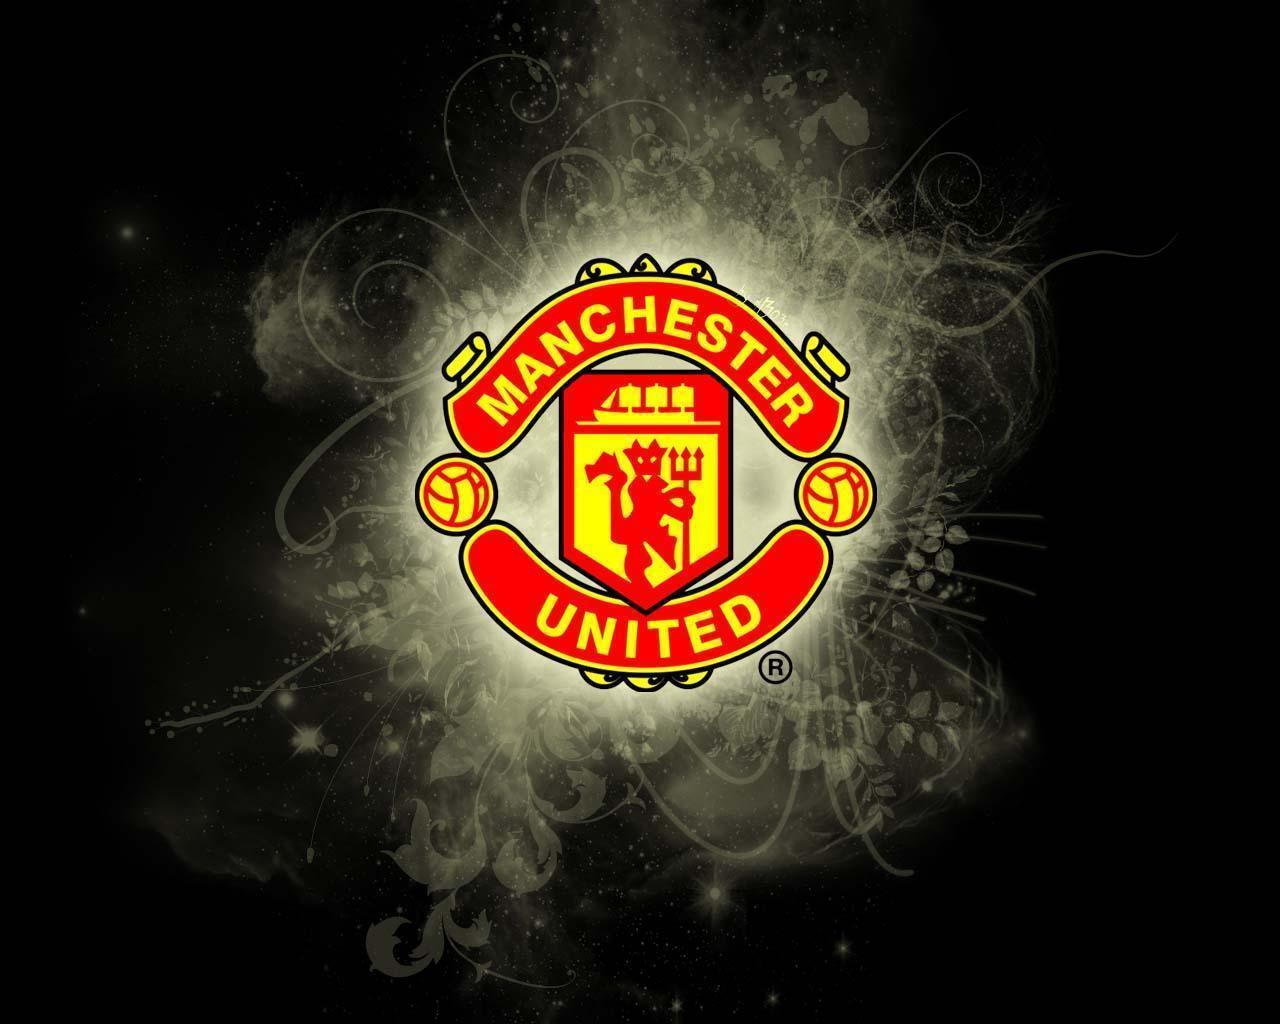 Manchester united wallpapers 3d 2017 wallpaper cave man utd wallpapers wallpaper cave voltagebd Choice Image